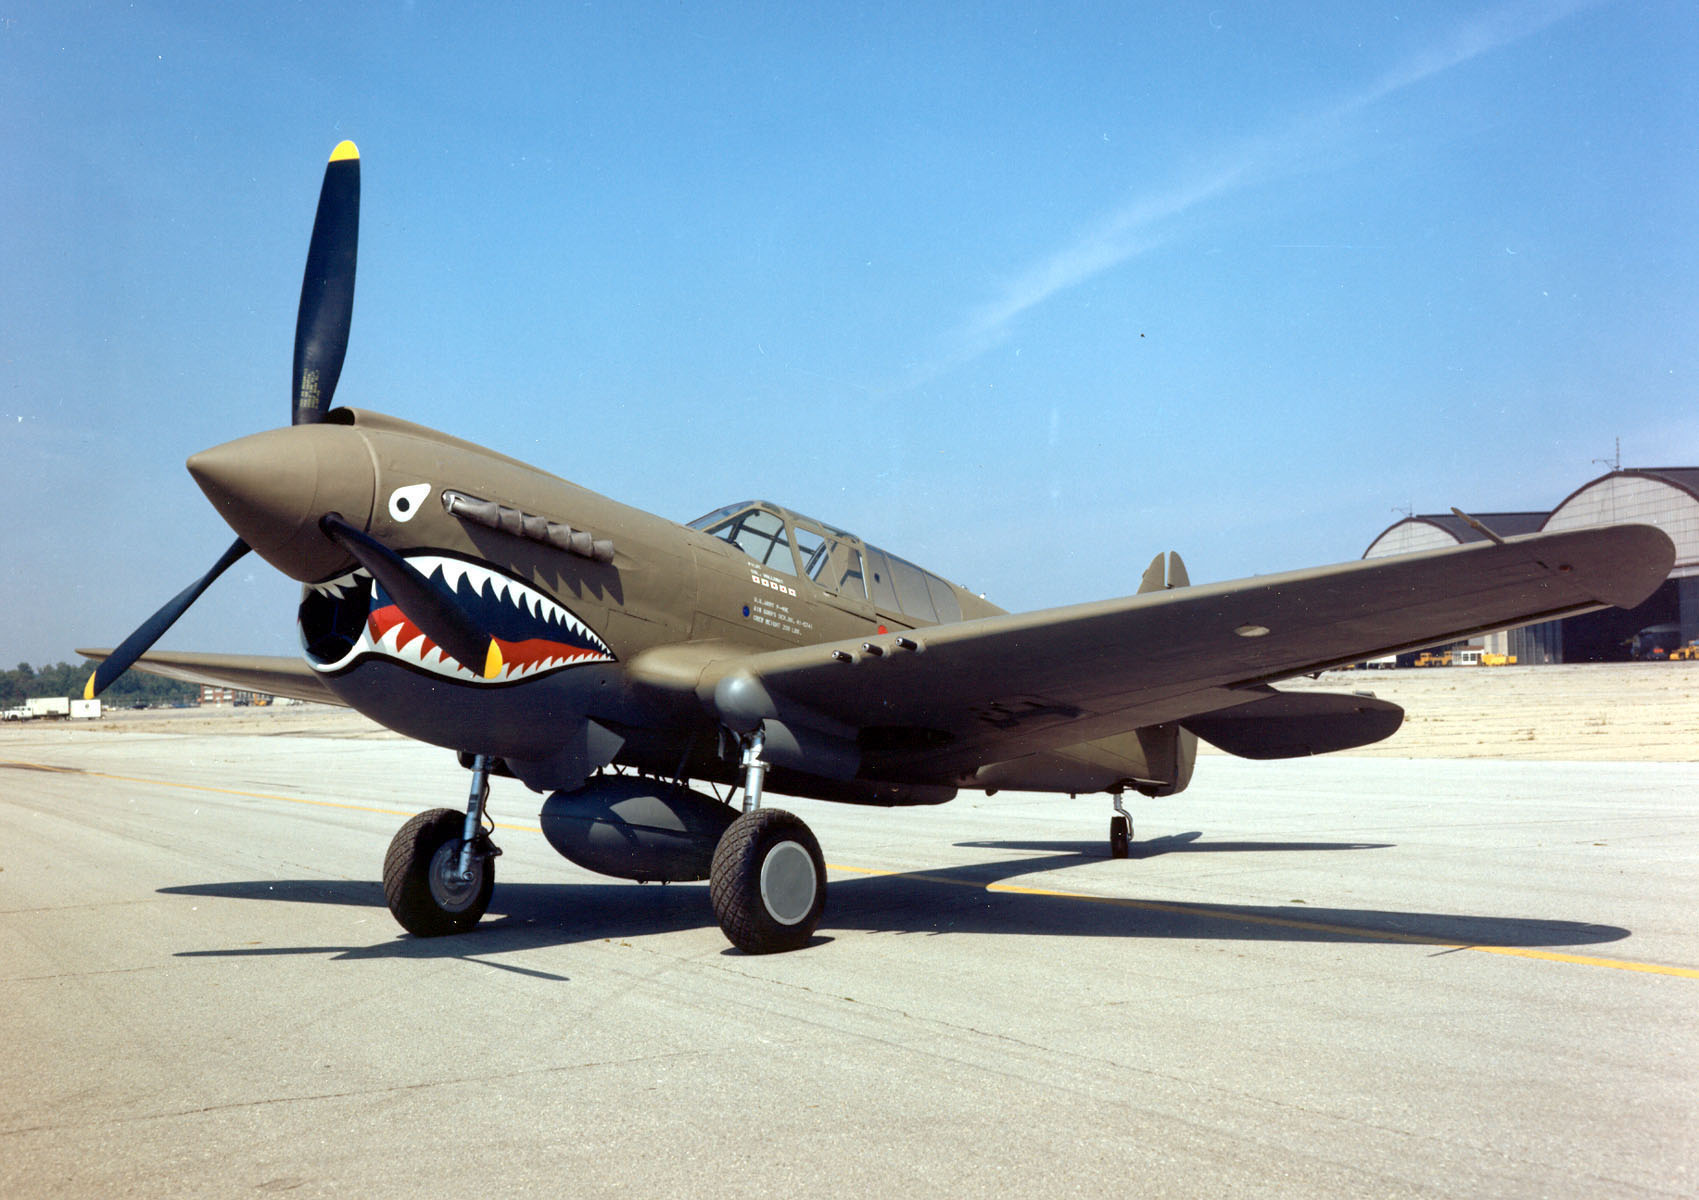 Curtiss P-40 Warhawk - Wikipedia